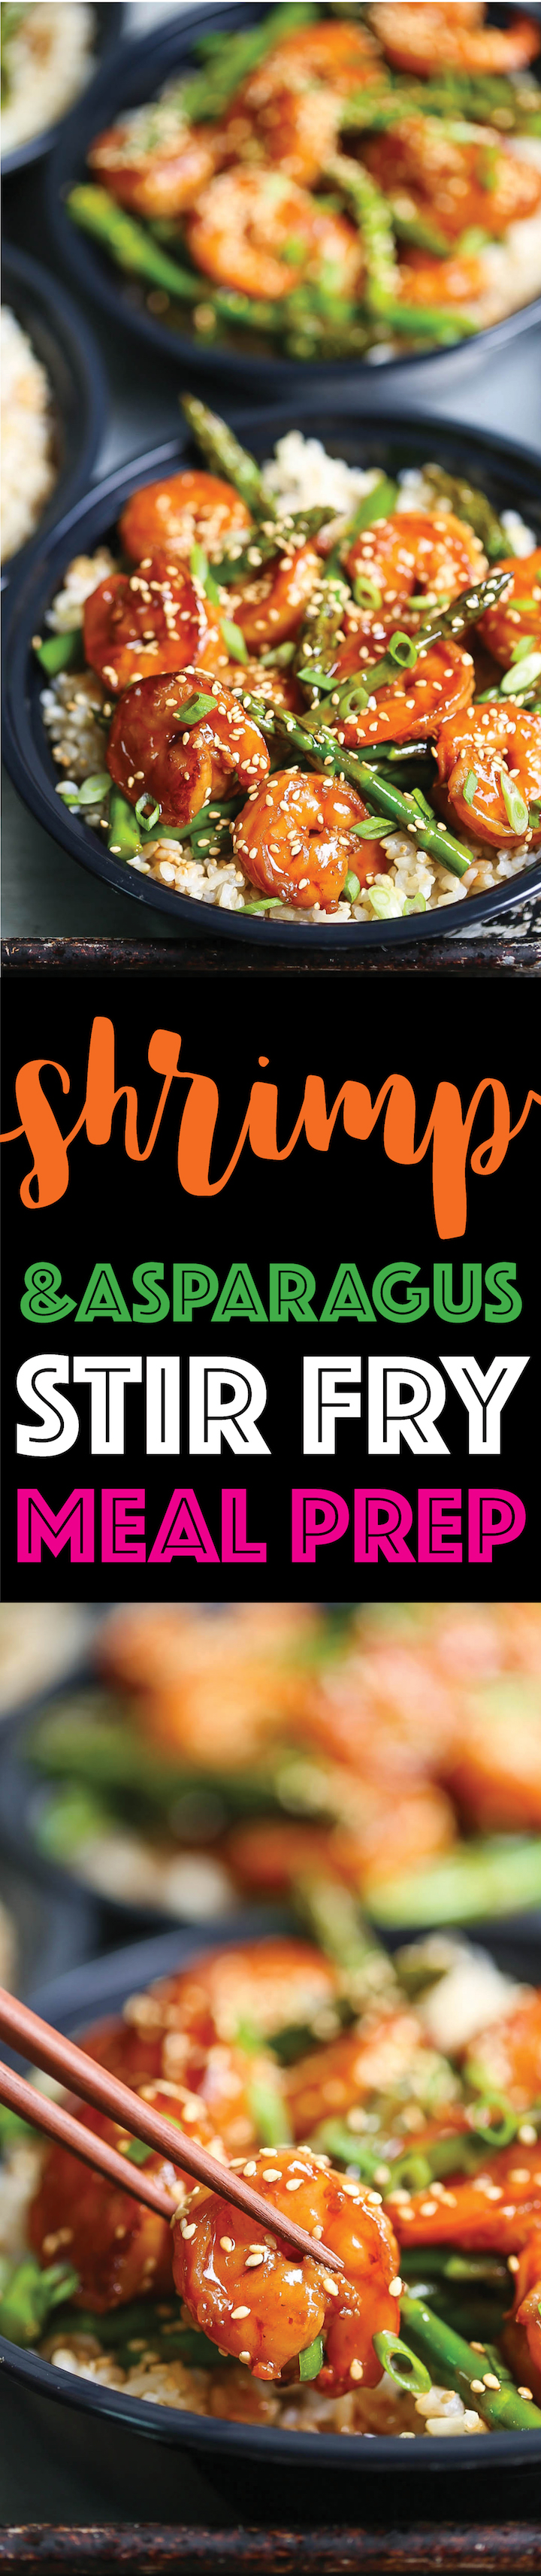 Shrimp and Asparagus Stir Fry Meal Prep - An easy stir fry that you can quickly prep ahead of time for the whole week! Simply add brown rice and you're set!